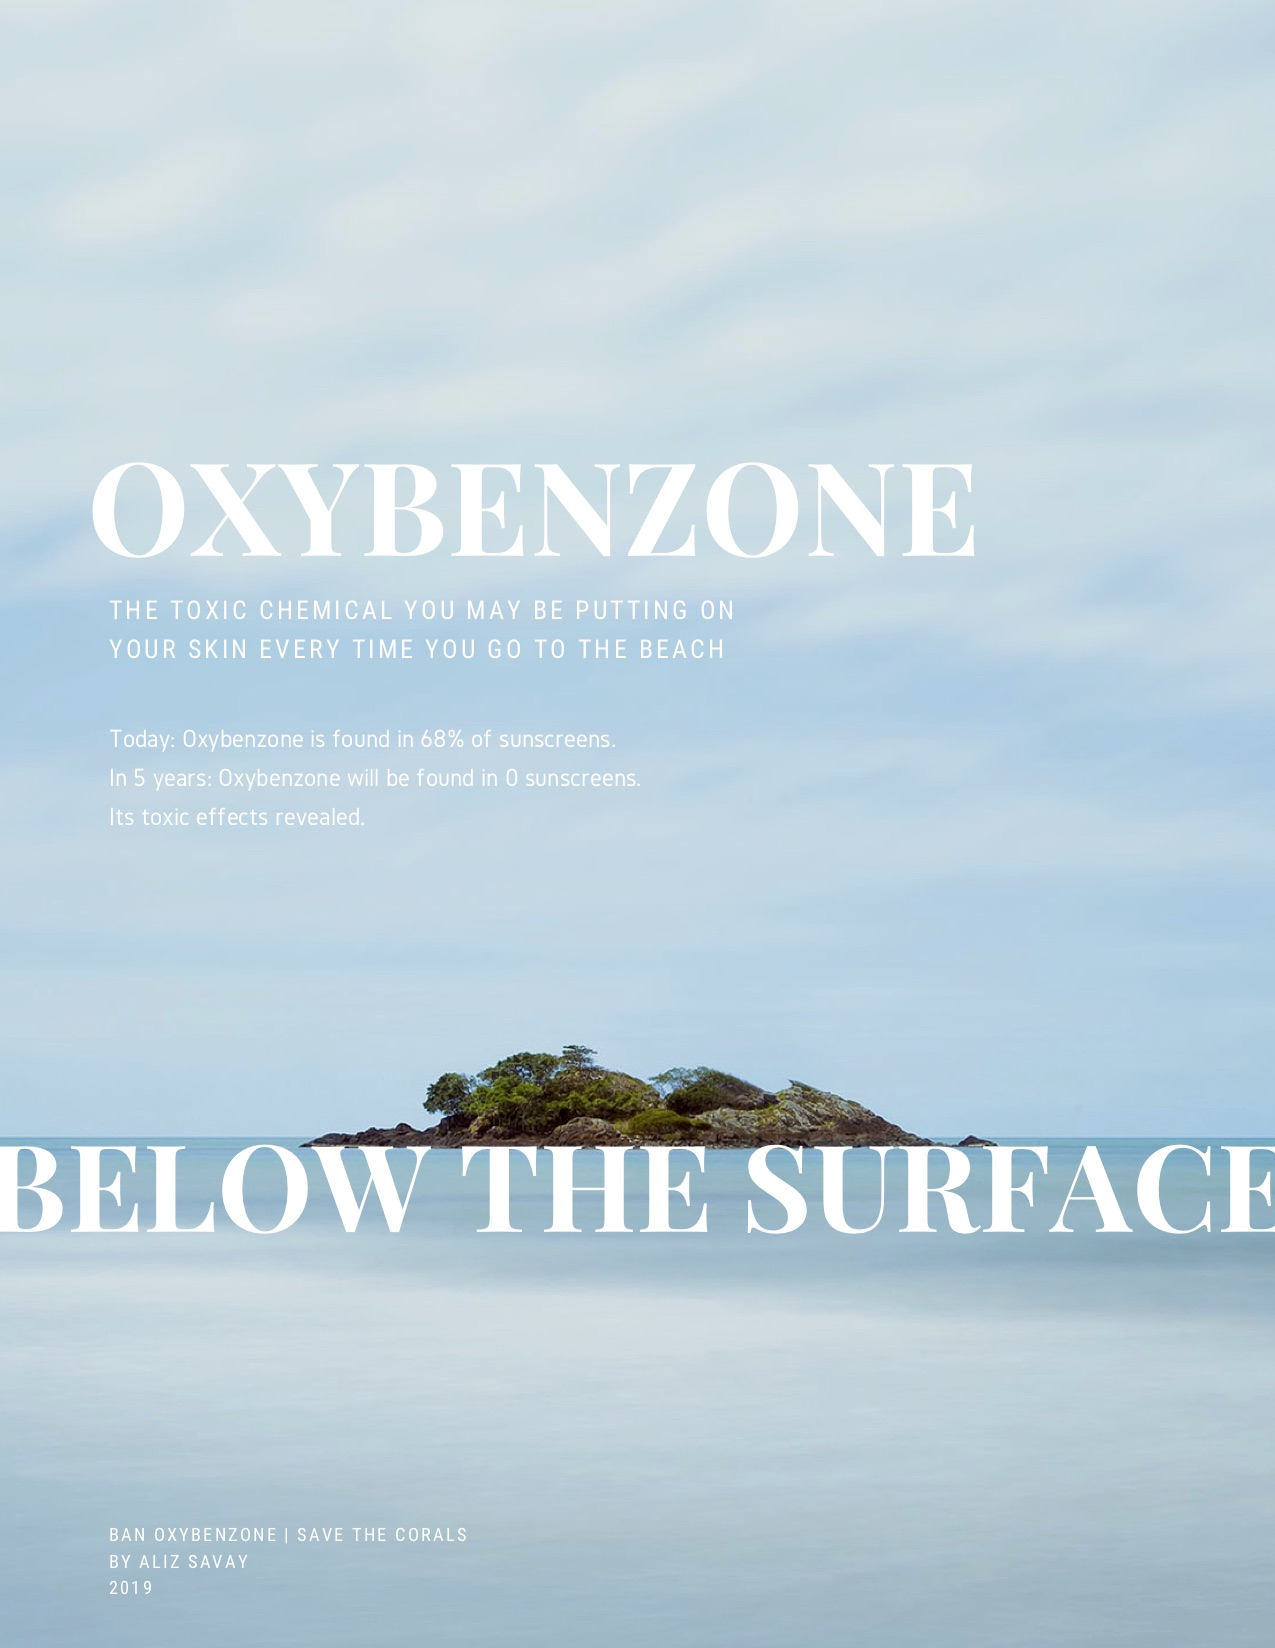 oxybenzone-below-the-surface-cover.jpg